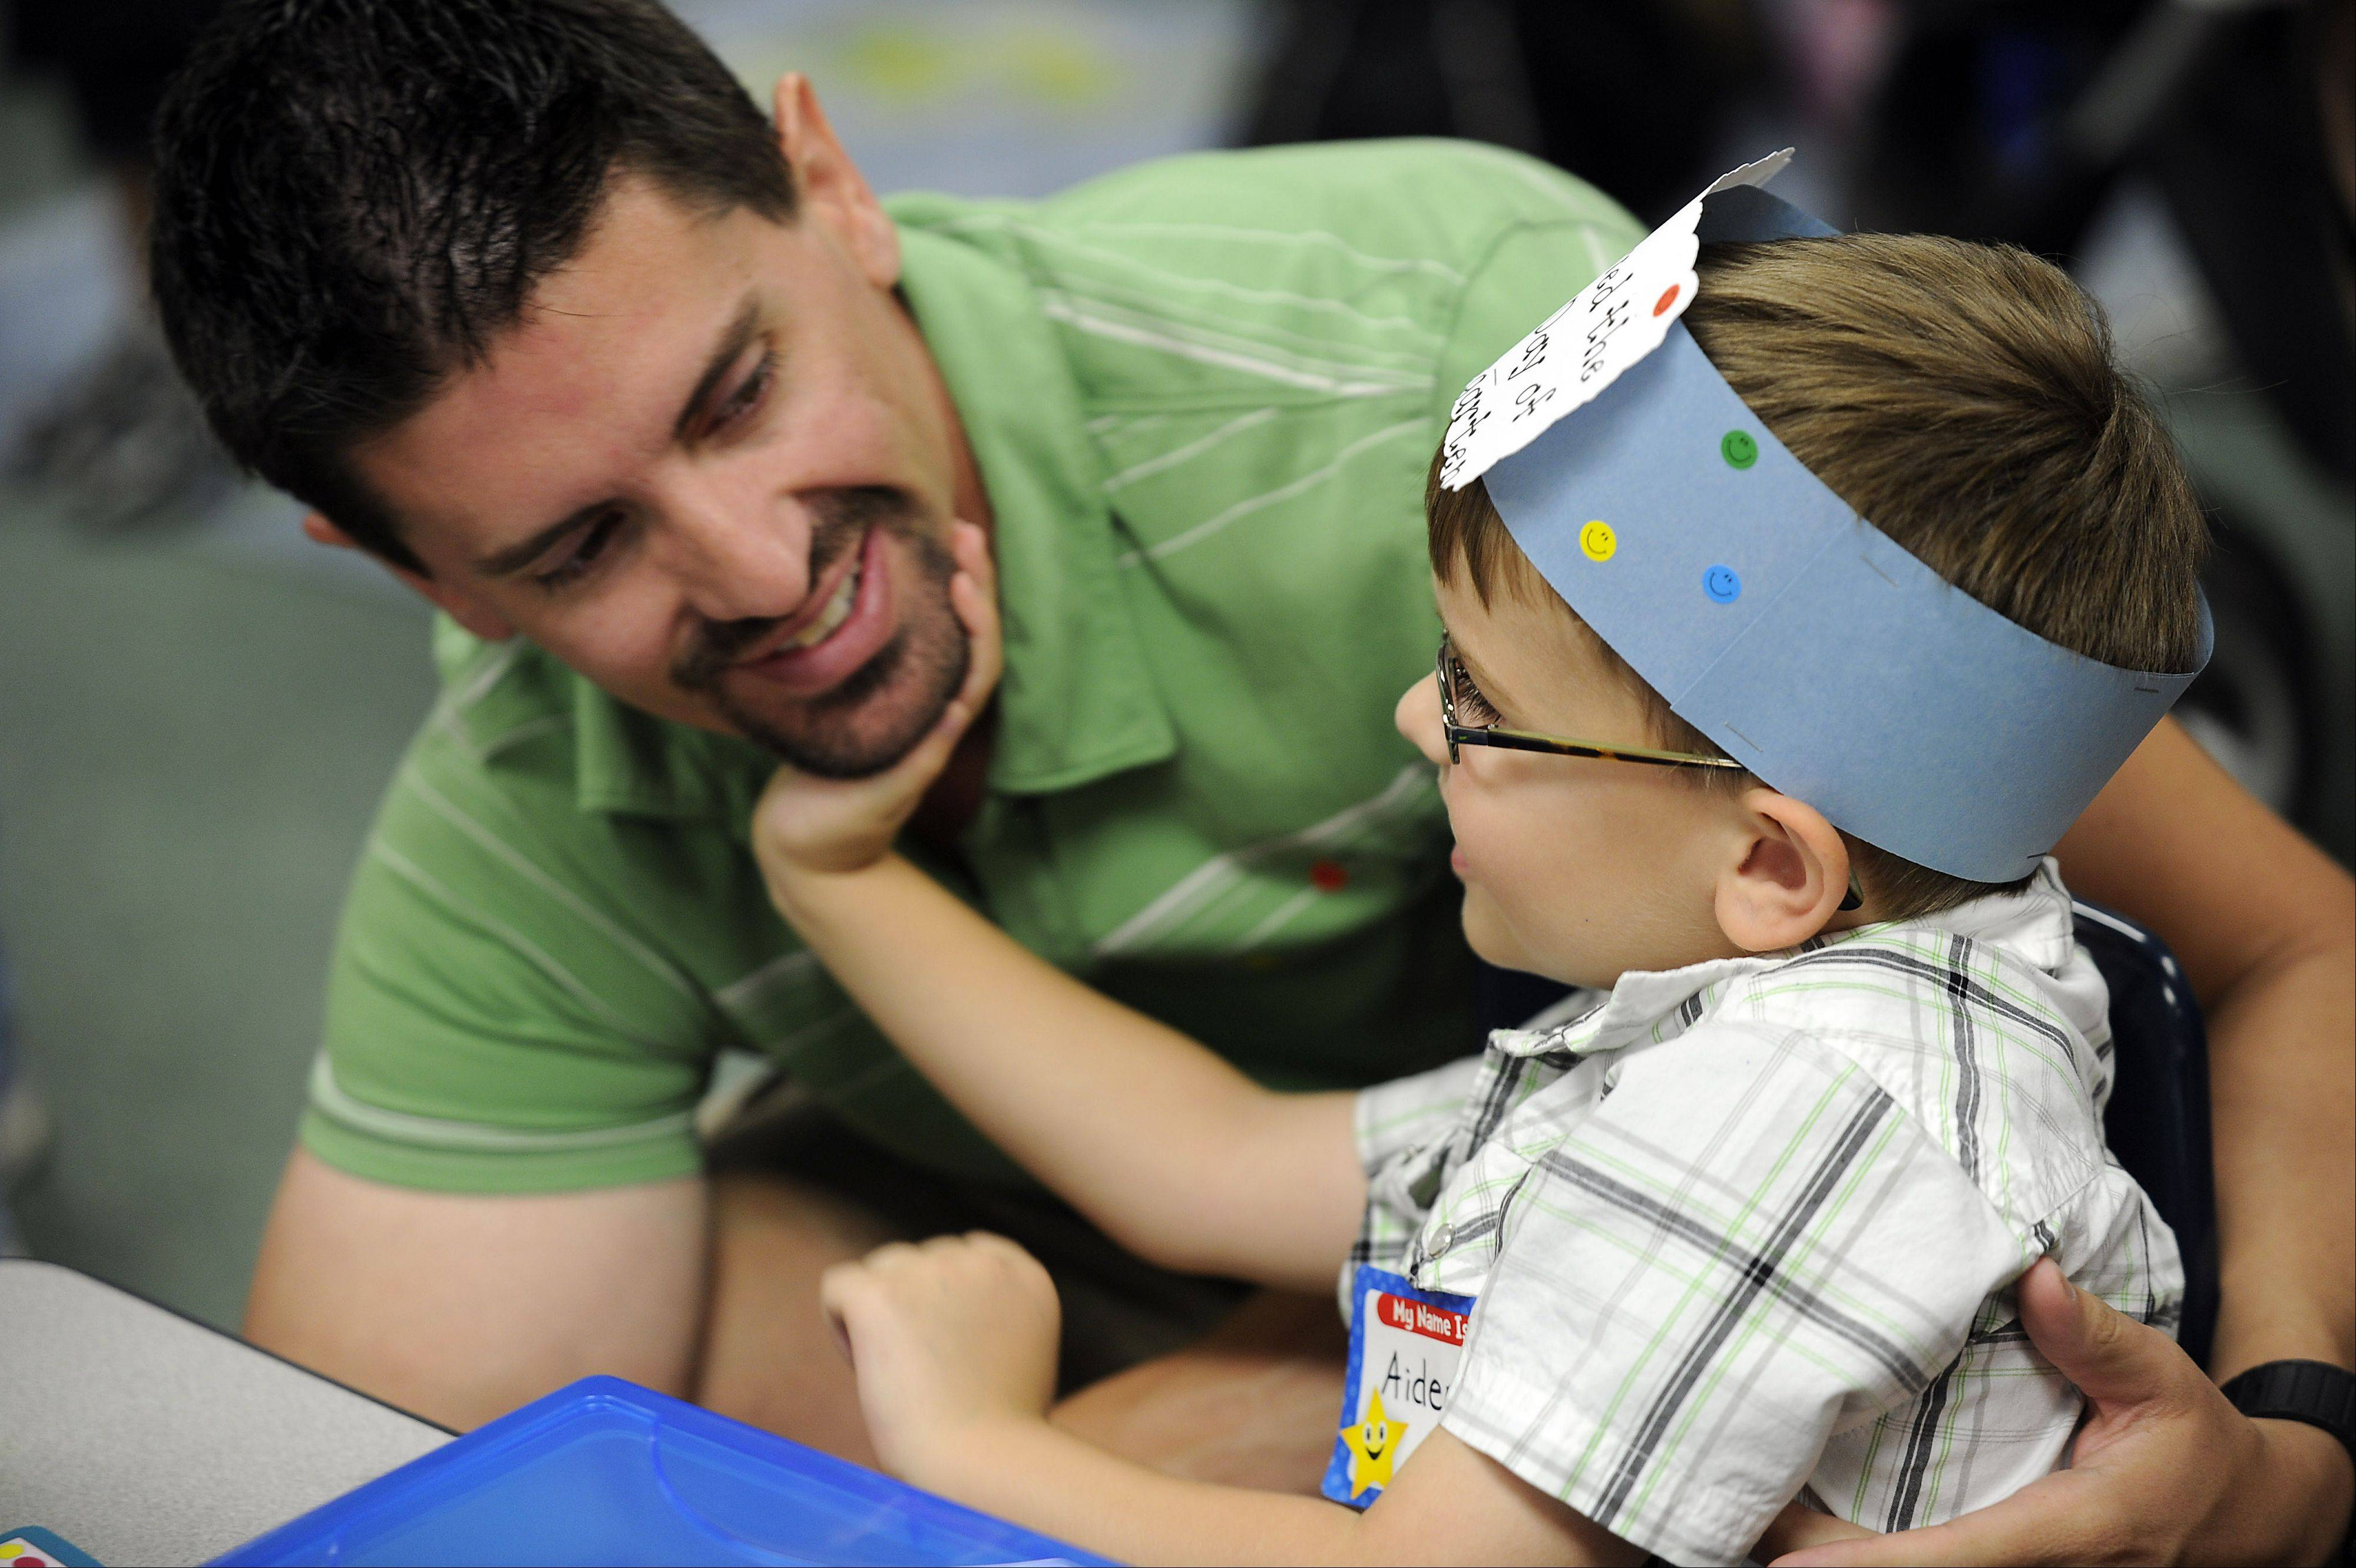 John and his son Aiden Weck, 5, of Arlington Heights play in his classroom at the Ridge Family Center for Learning in Elk Grove Village as part of the open house on Wednesday.